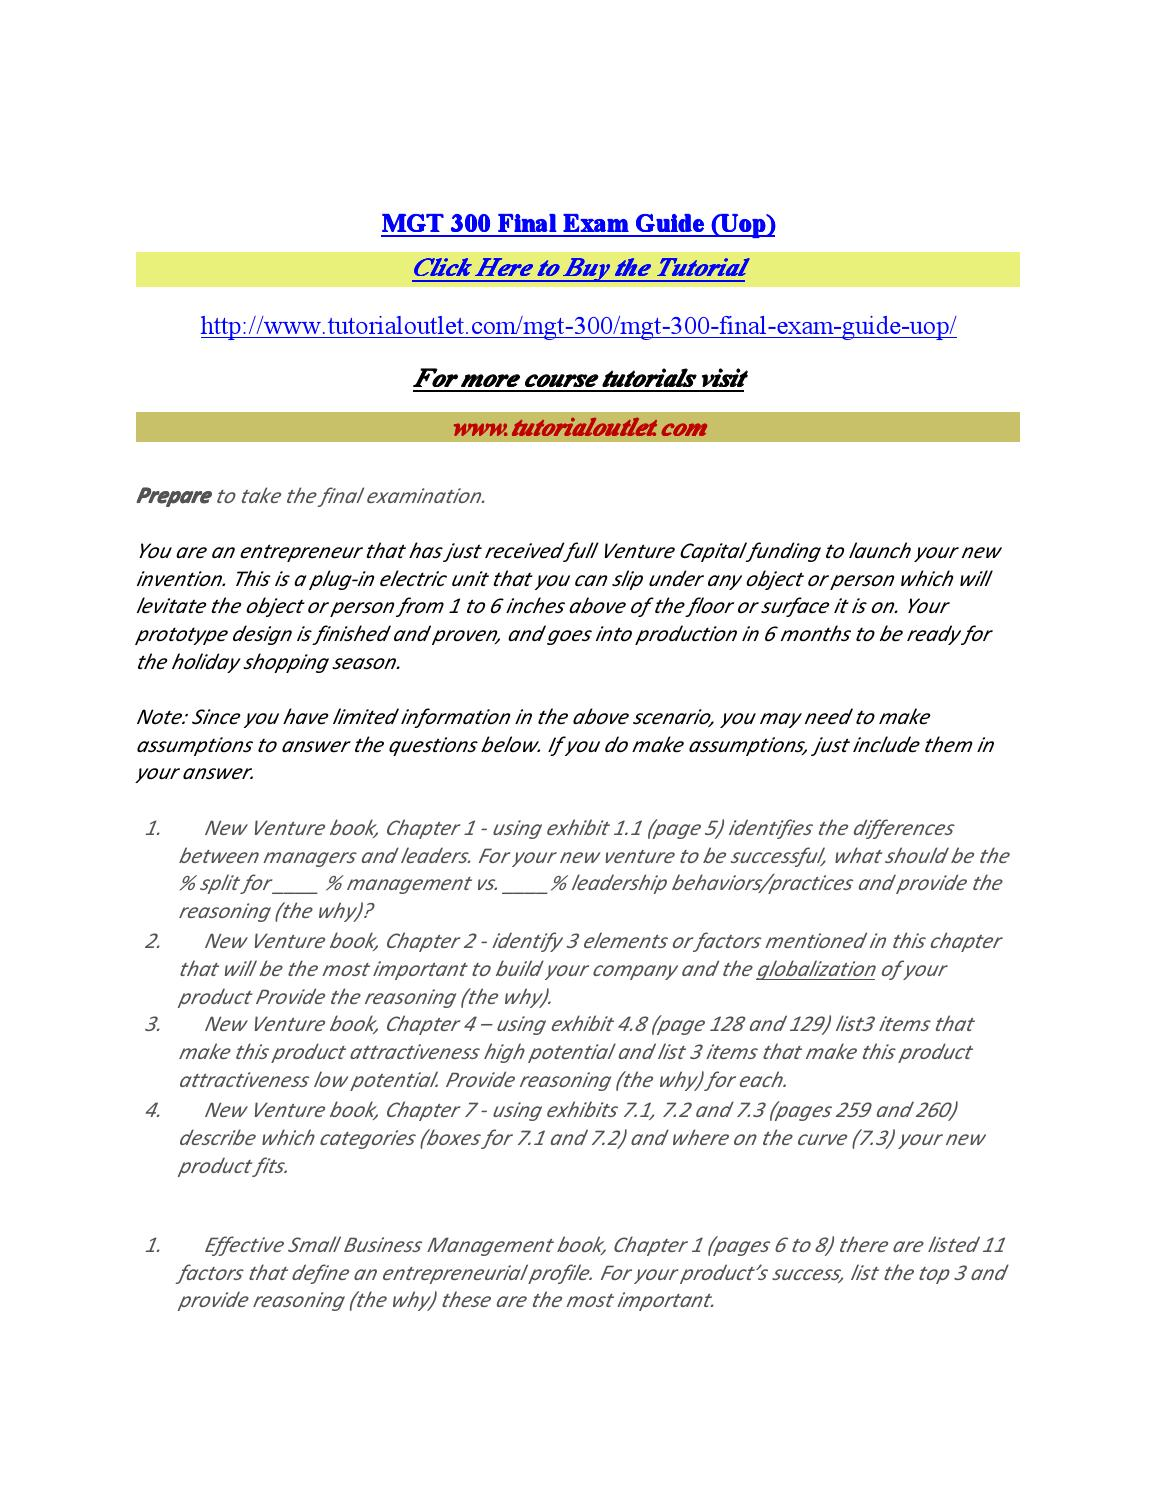 Mgt 300 final exam guide (uop) by softzone484 - issuu